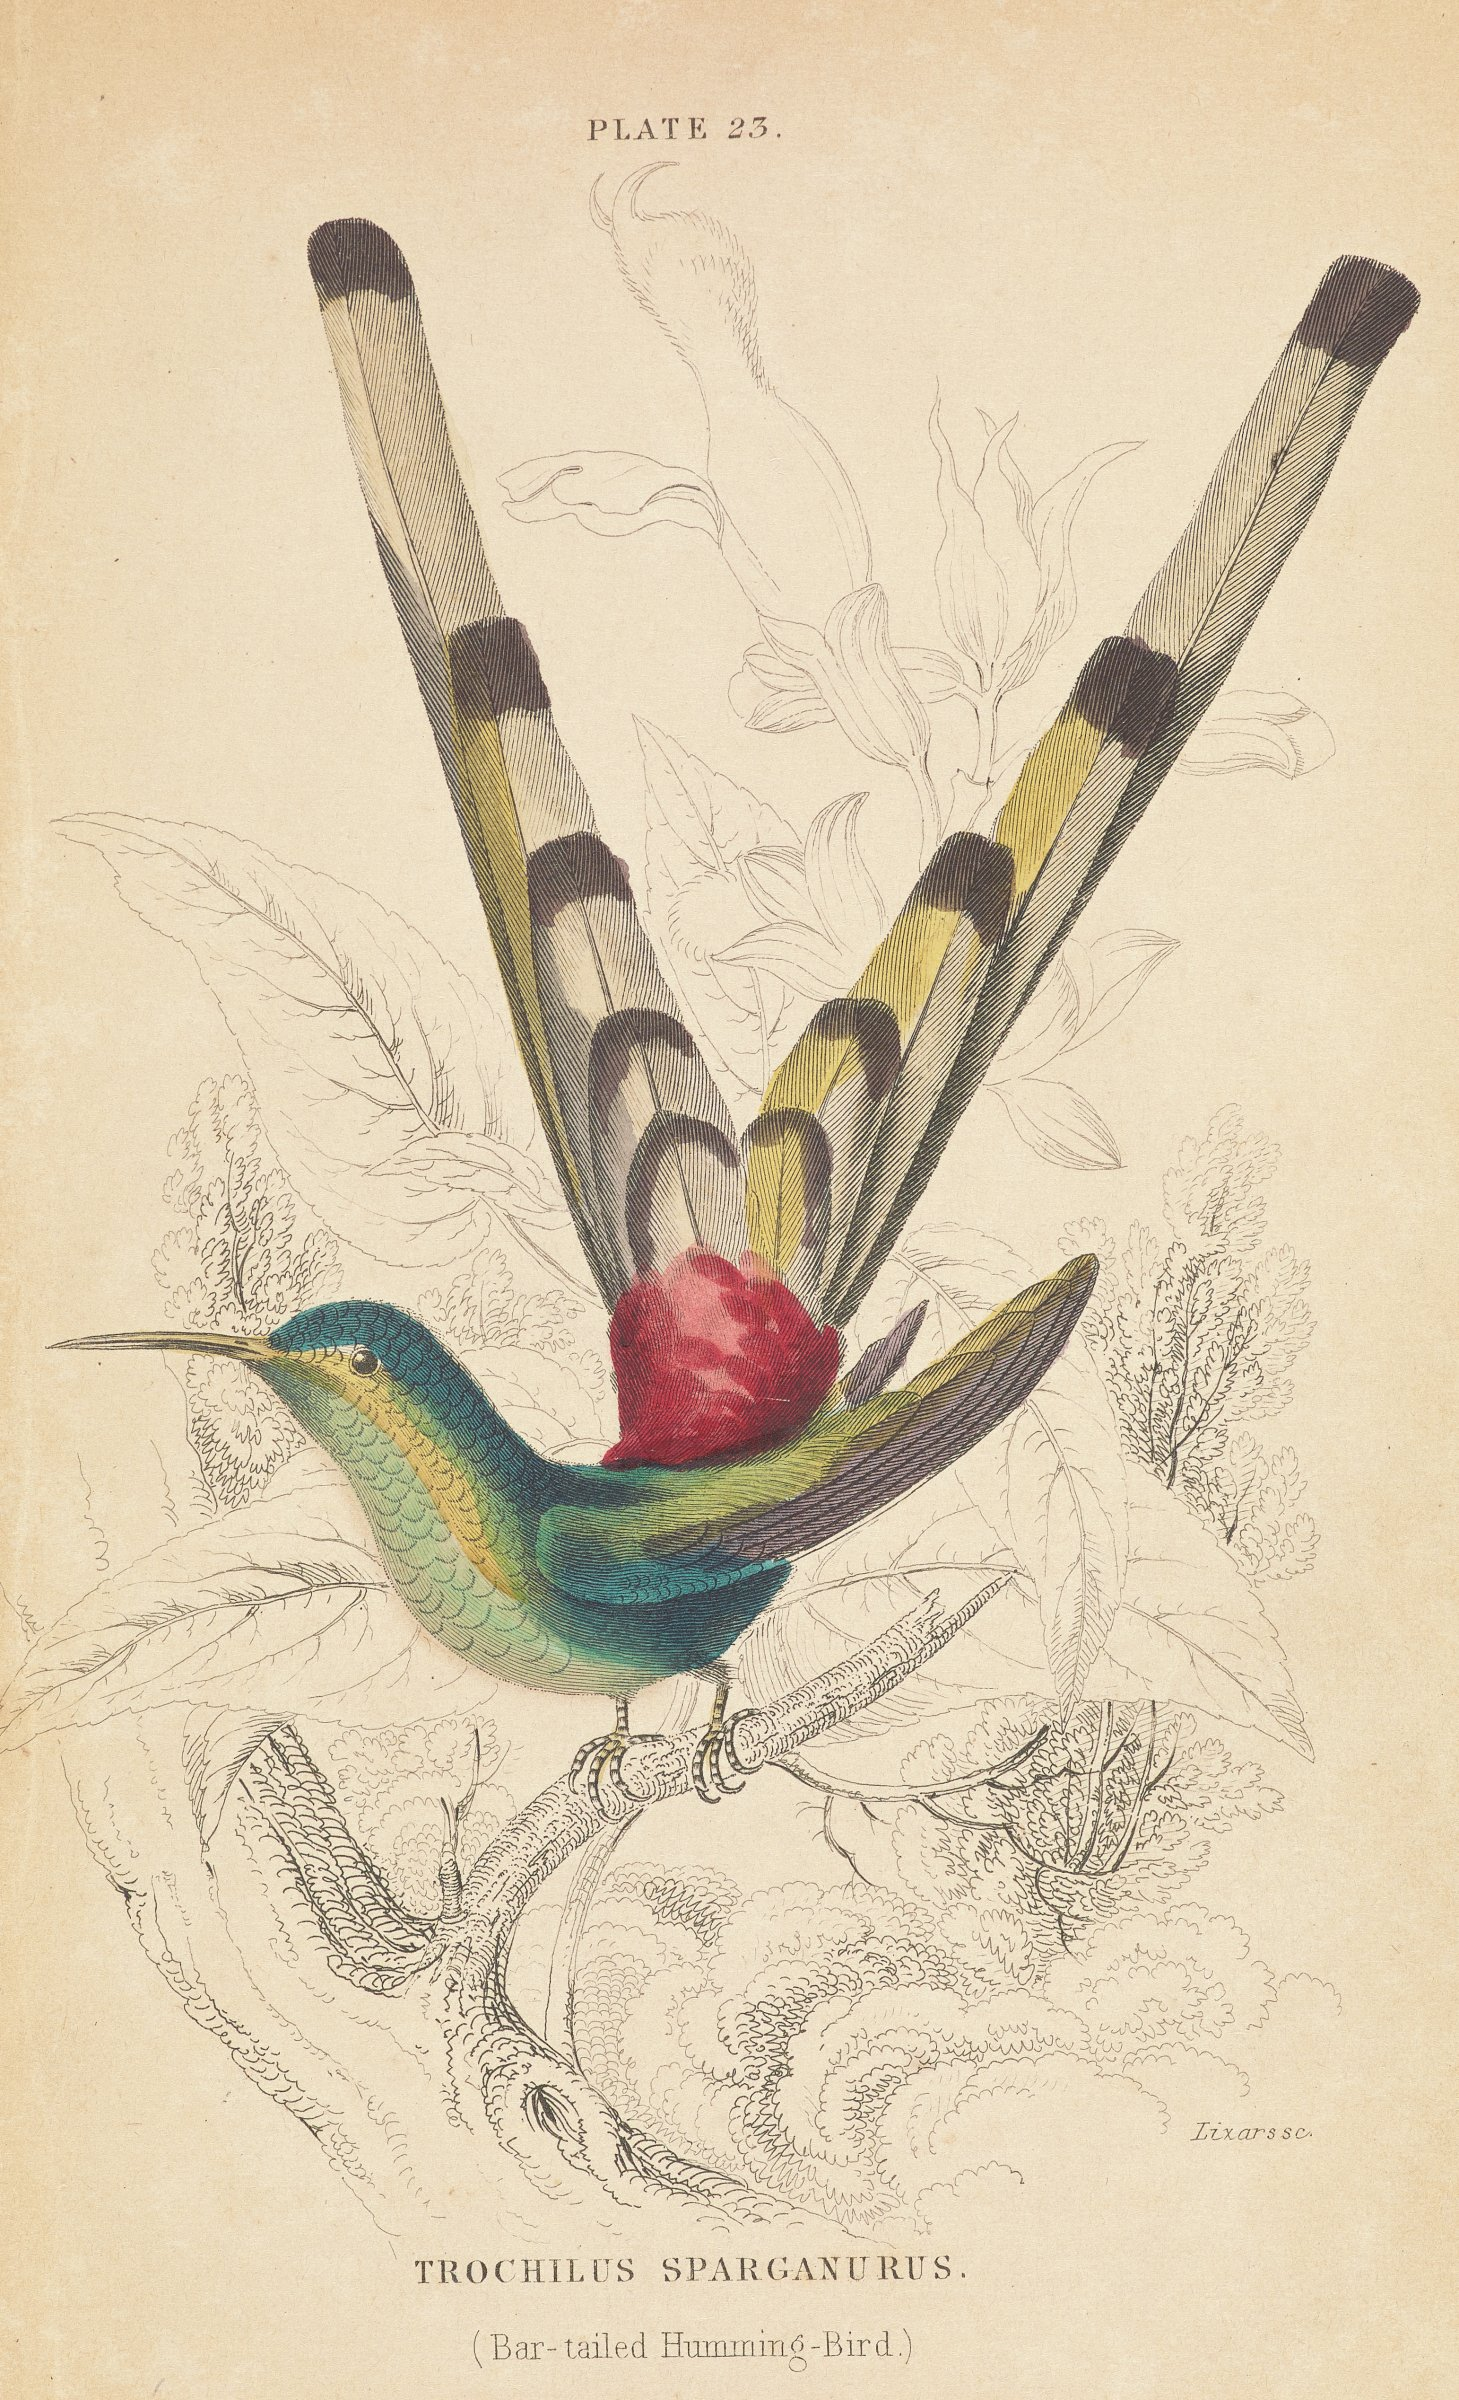 A hummingbird with a long v-shaped tail stands on a tree branch. Uncolored plant life is depicted behind it.